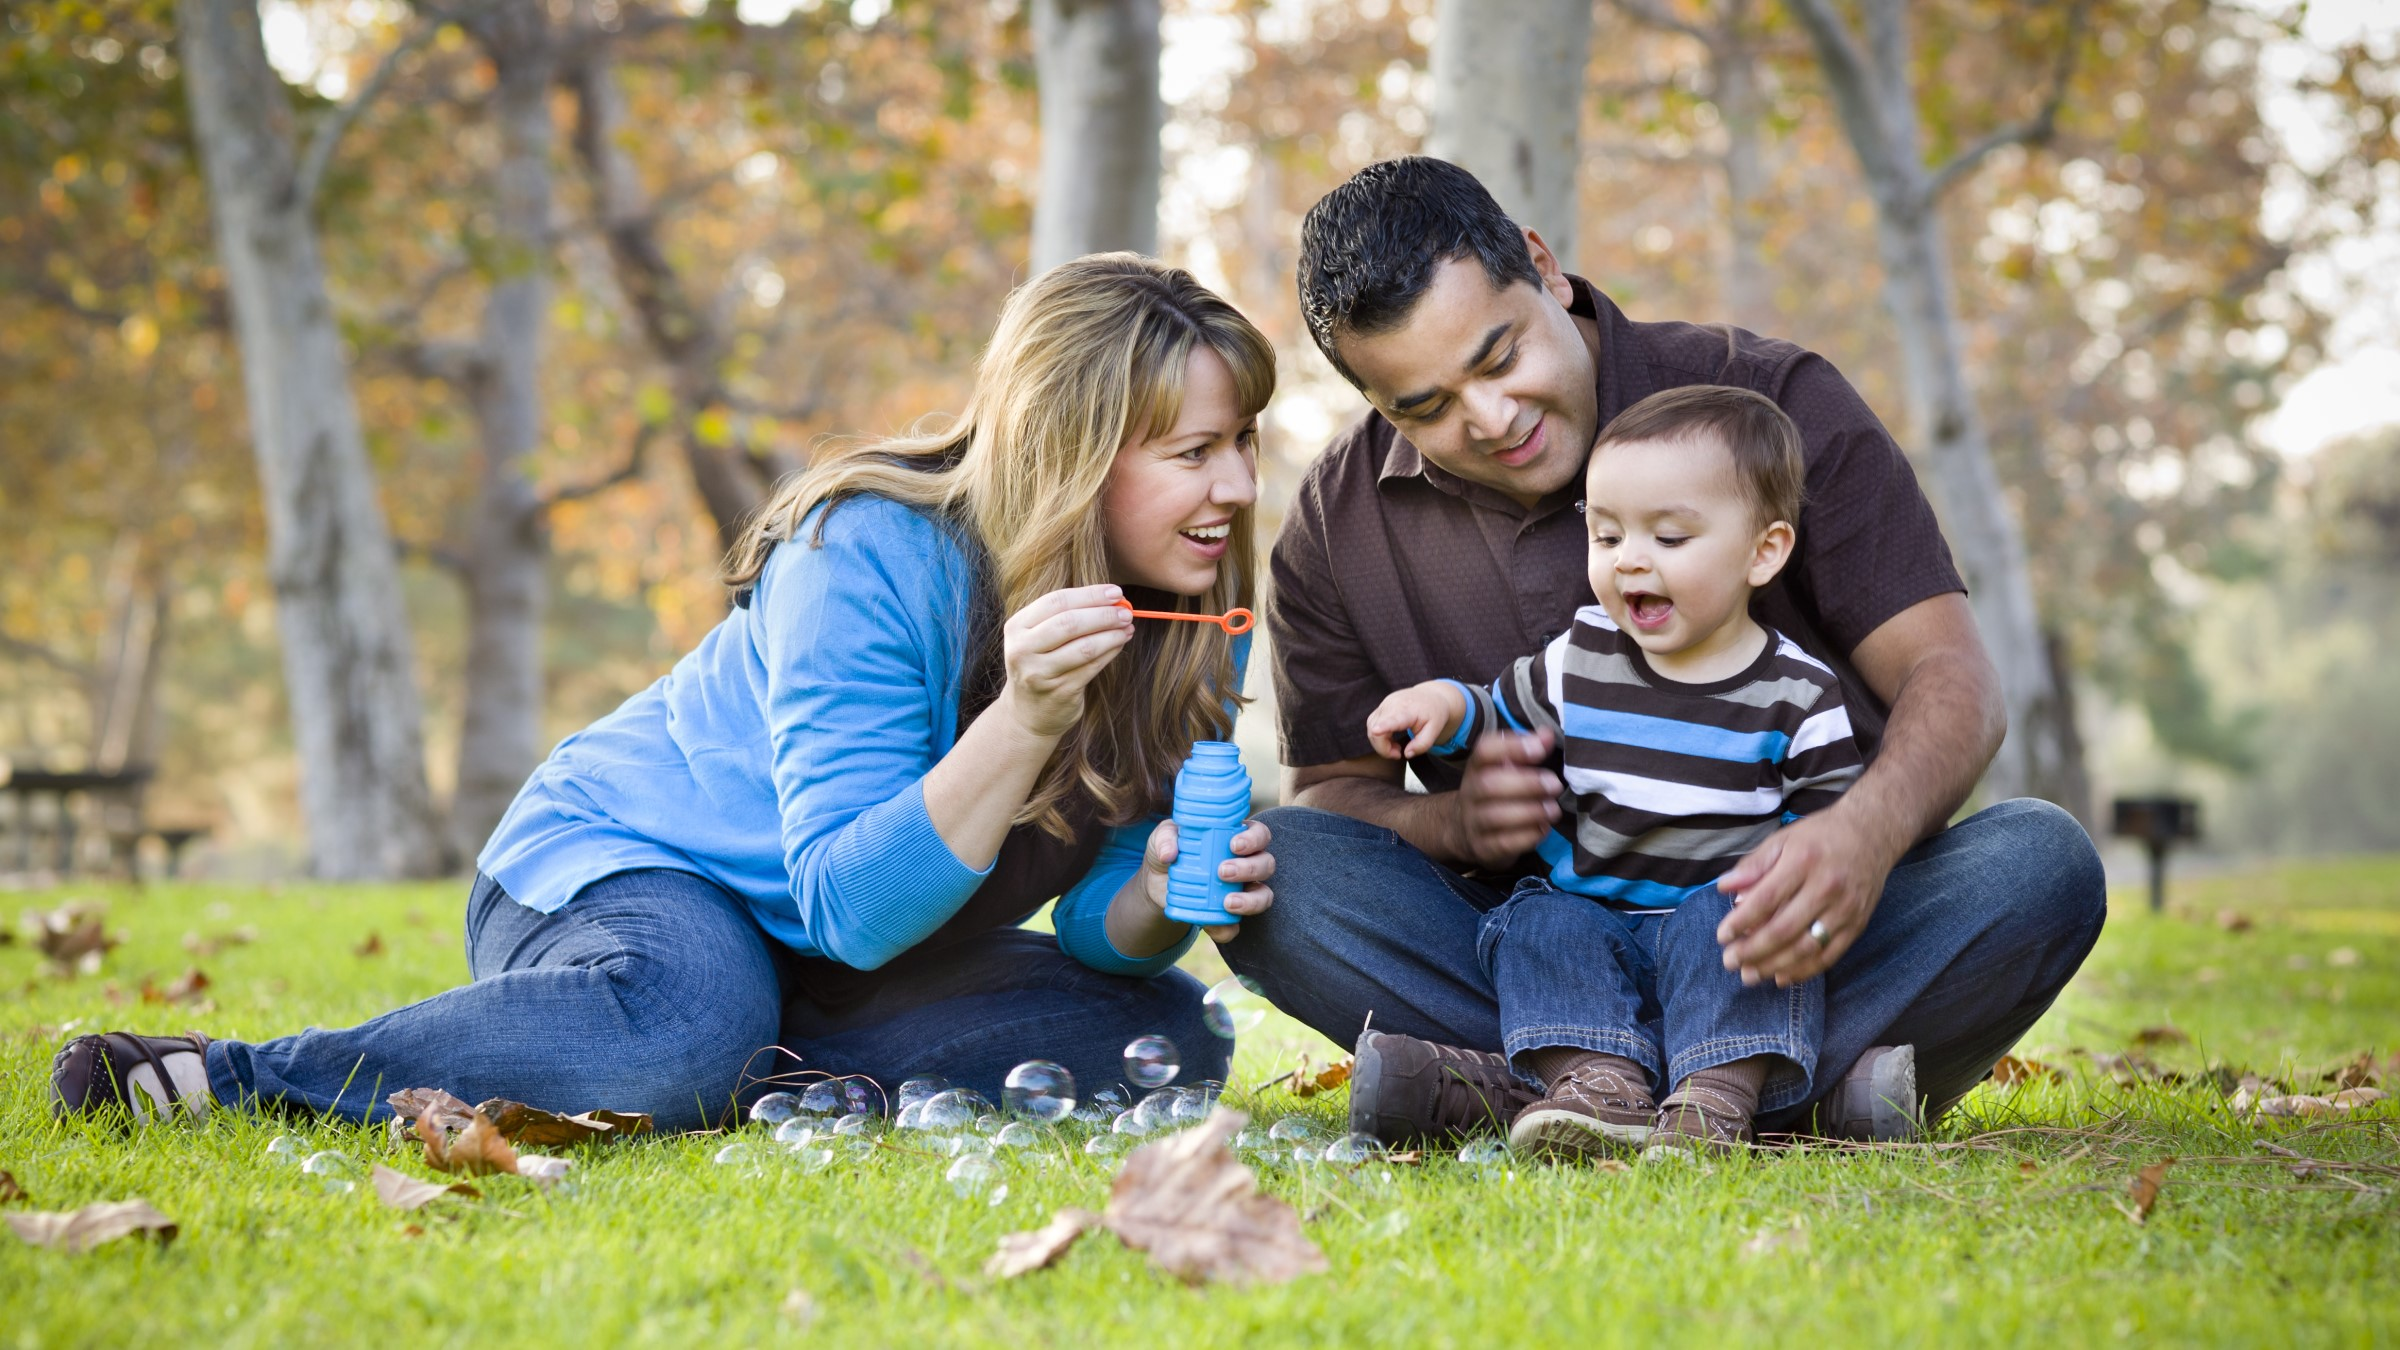 Young family blowing bubbles in the park